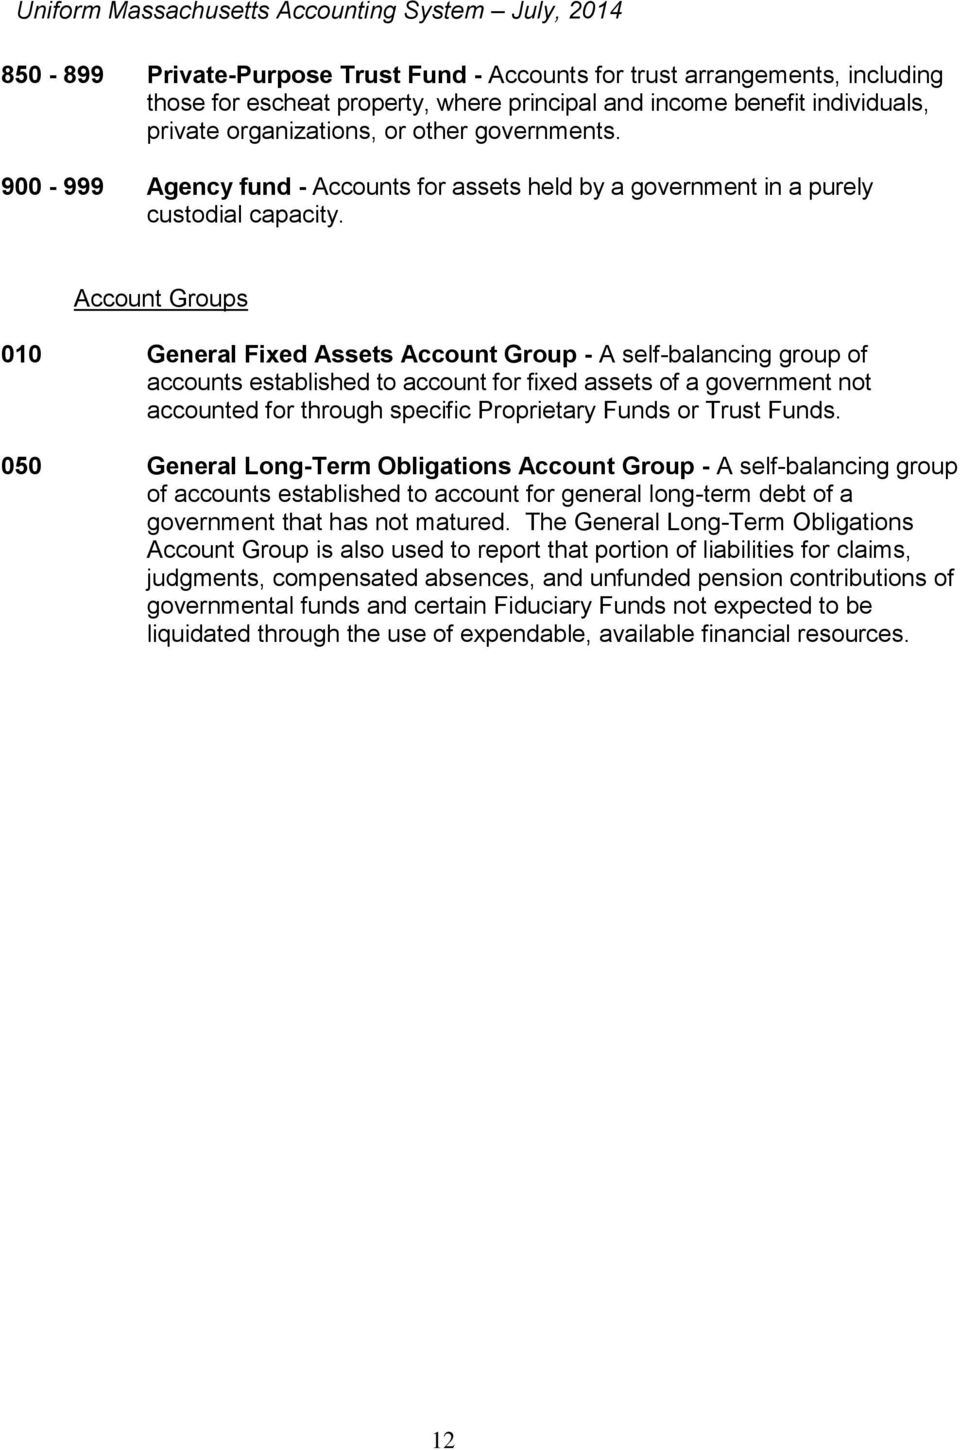 Account Groups 010 General Fixed Assets Account Group - A self-balancing group of accounts established to account for fixed assets of a government not accounted for through specific Proprietary Funds